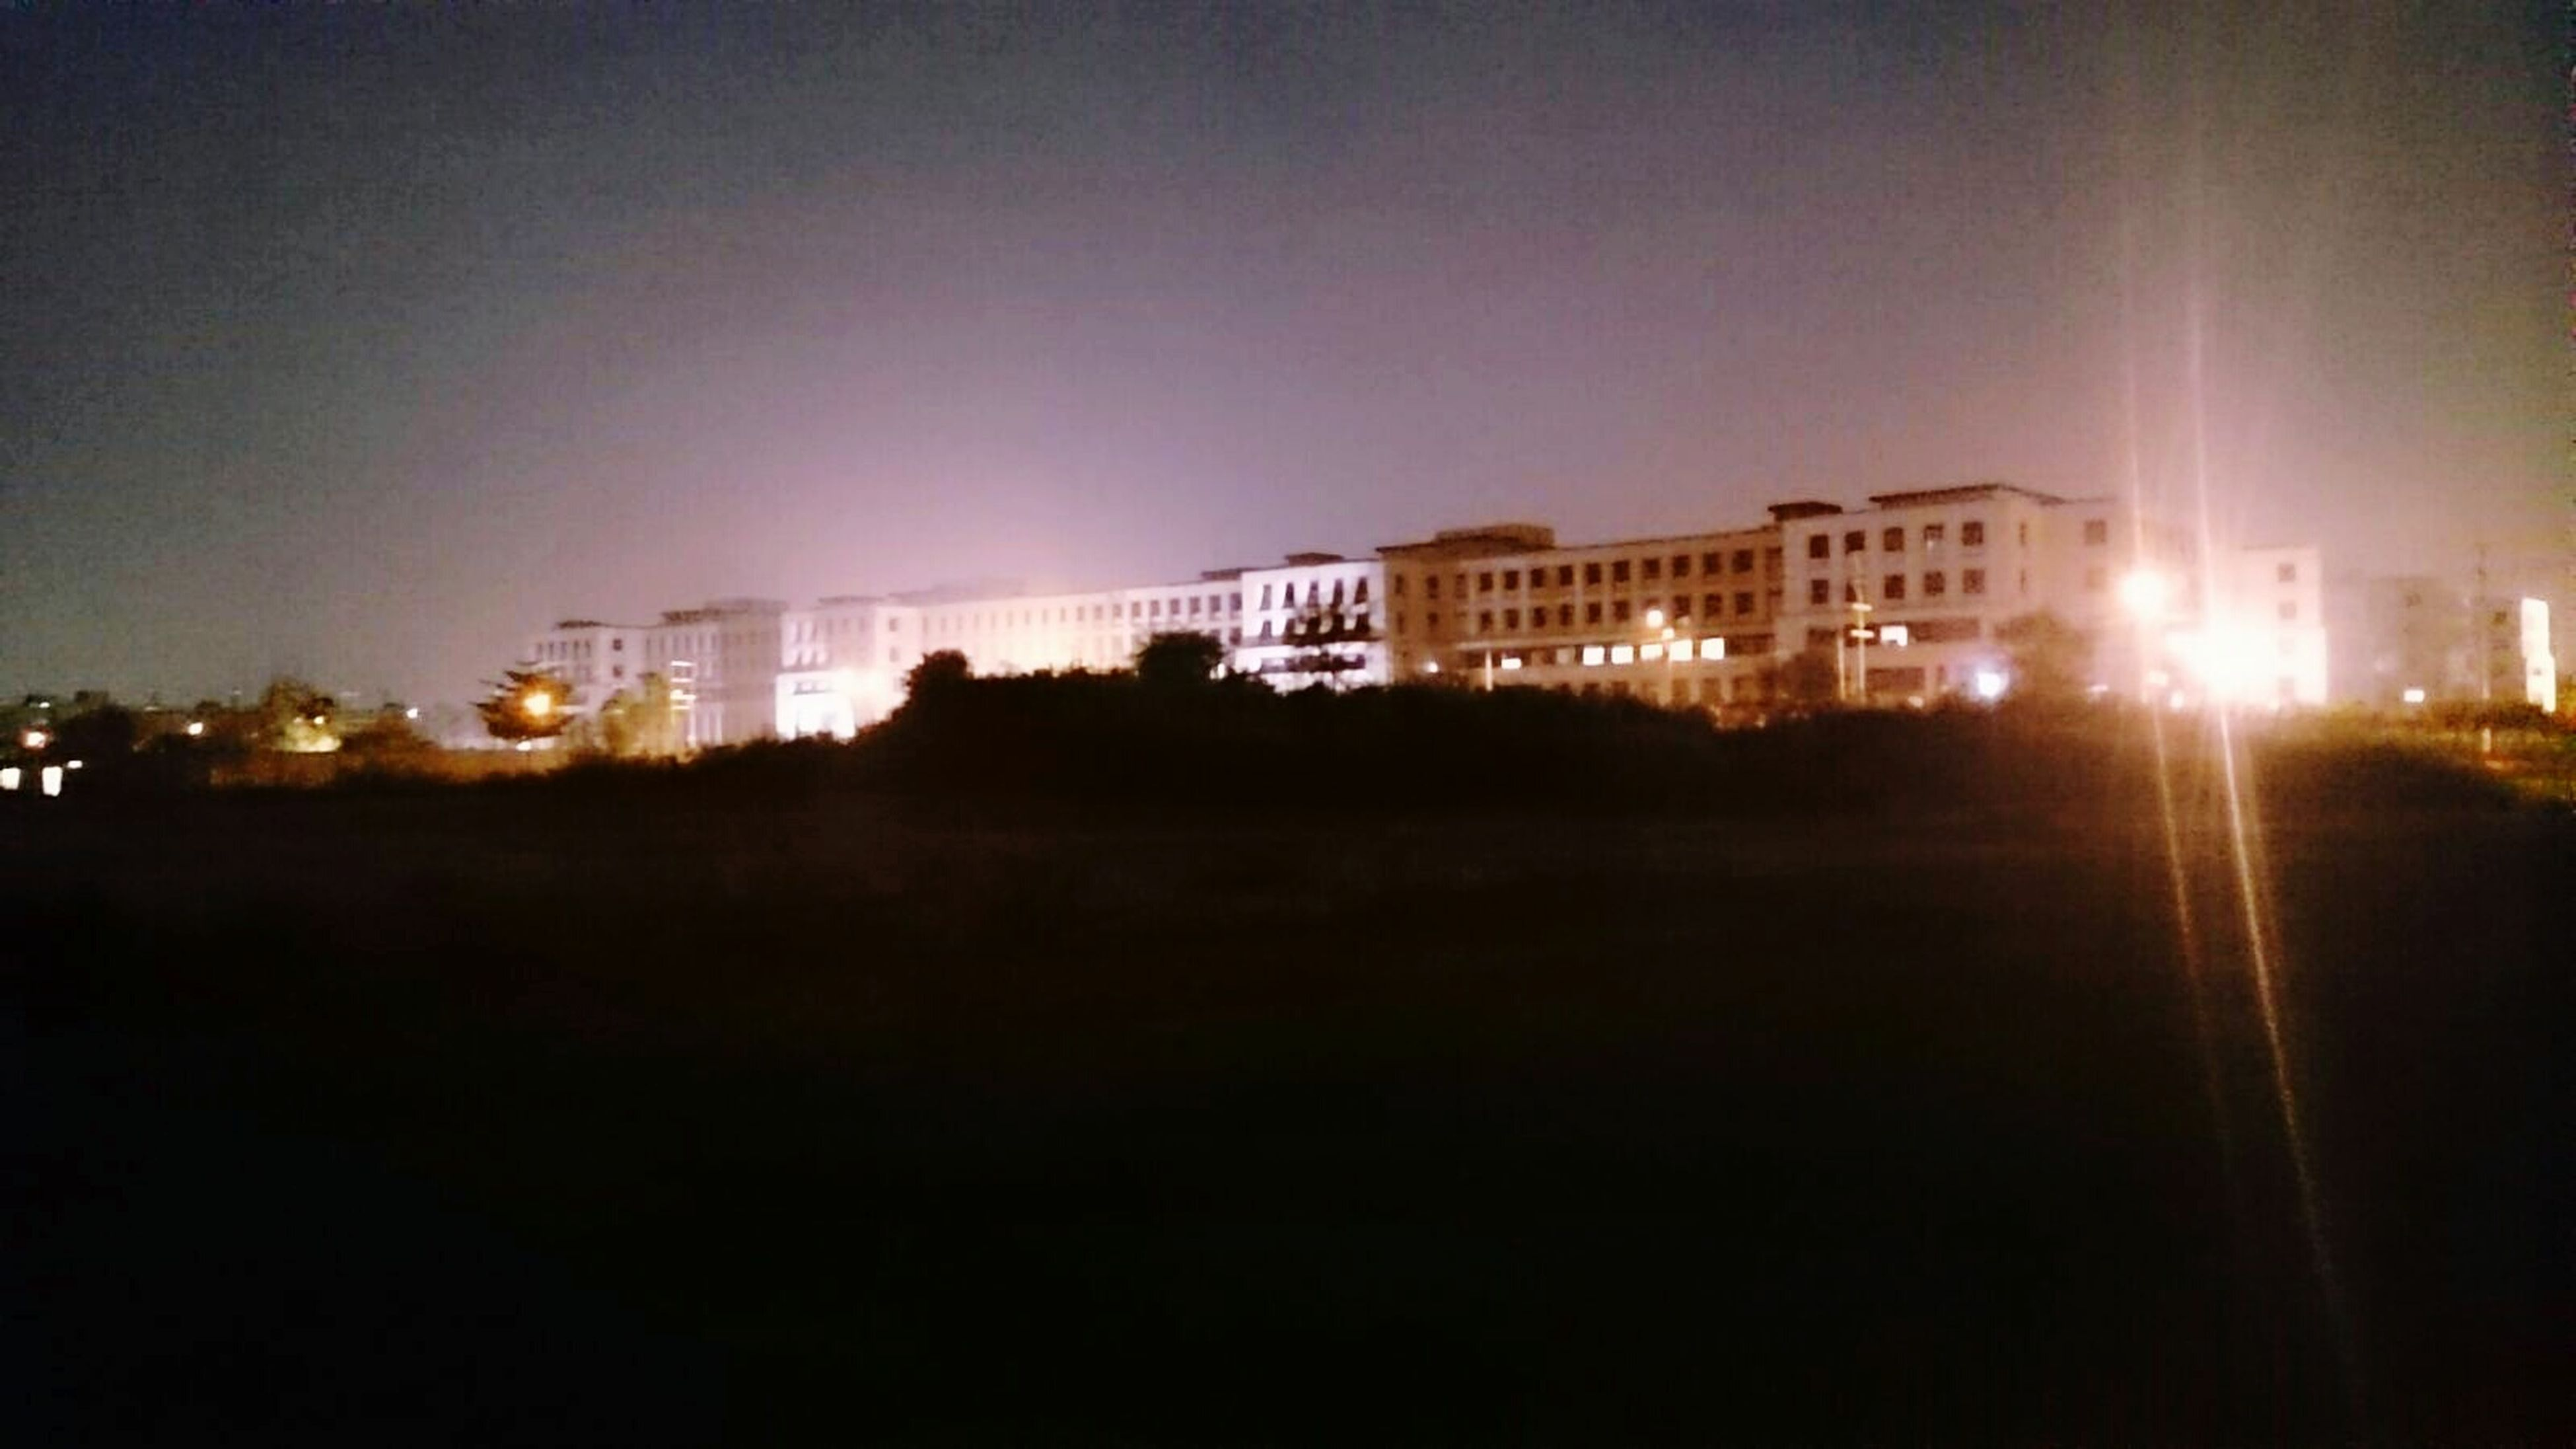 illuminated, night, architecture, built structure, city, dark, building, residential building, cityscape, sky, no people, outdoors, city life, residential district, glowing, light, nature, growth